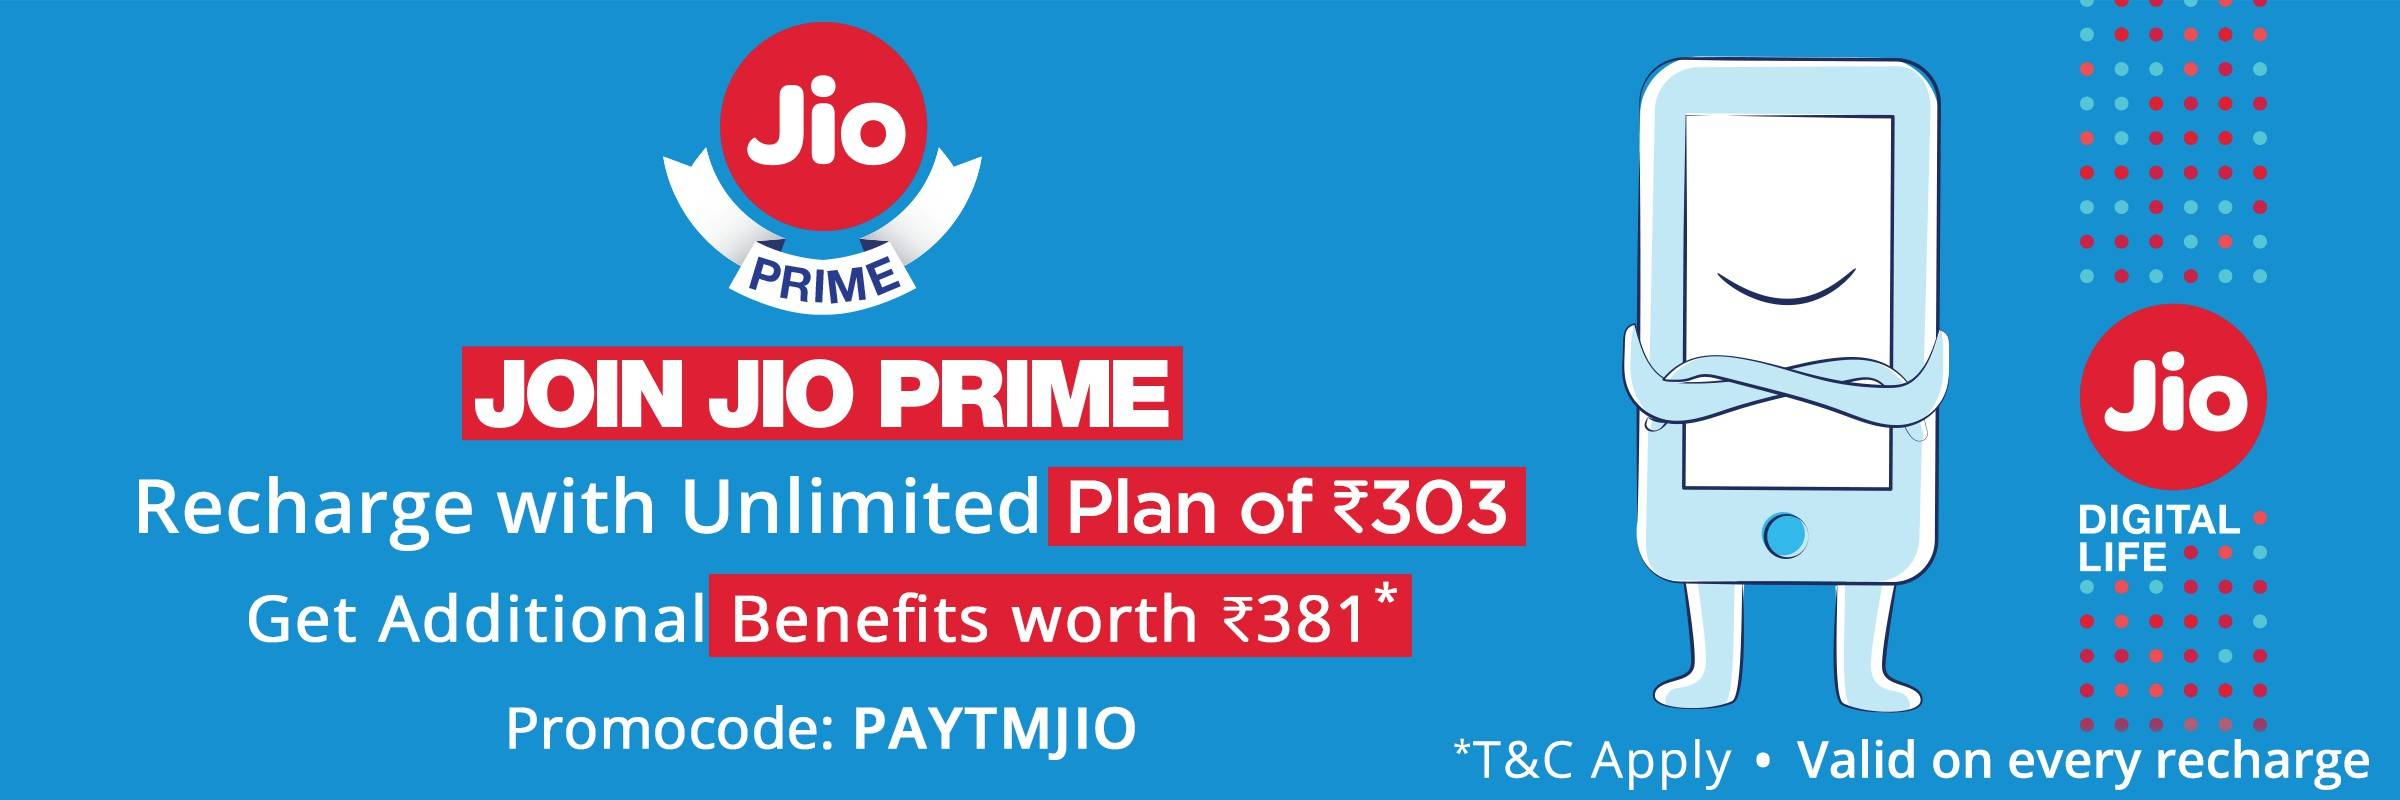 Recharge Your Reliance Jio No. Via Paytm: All Prime & Non-Prime Plans